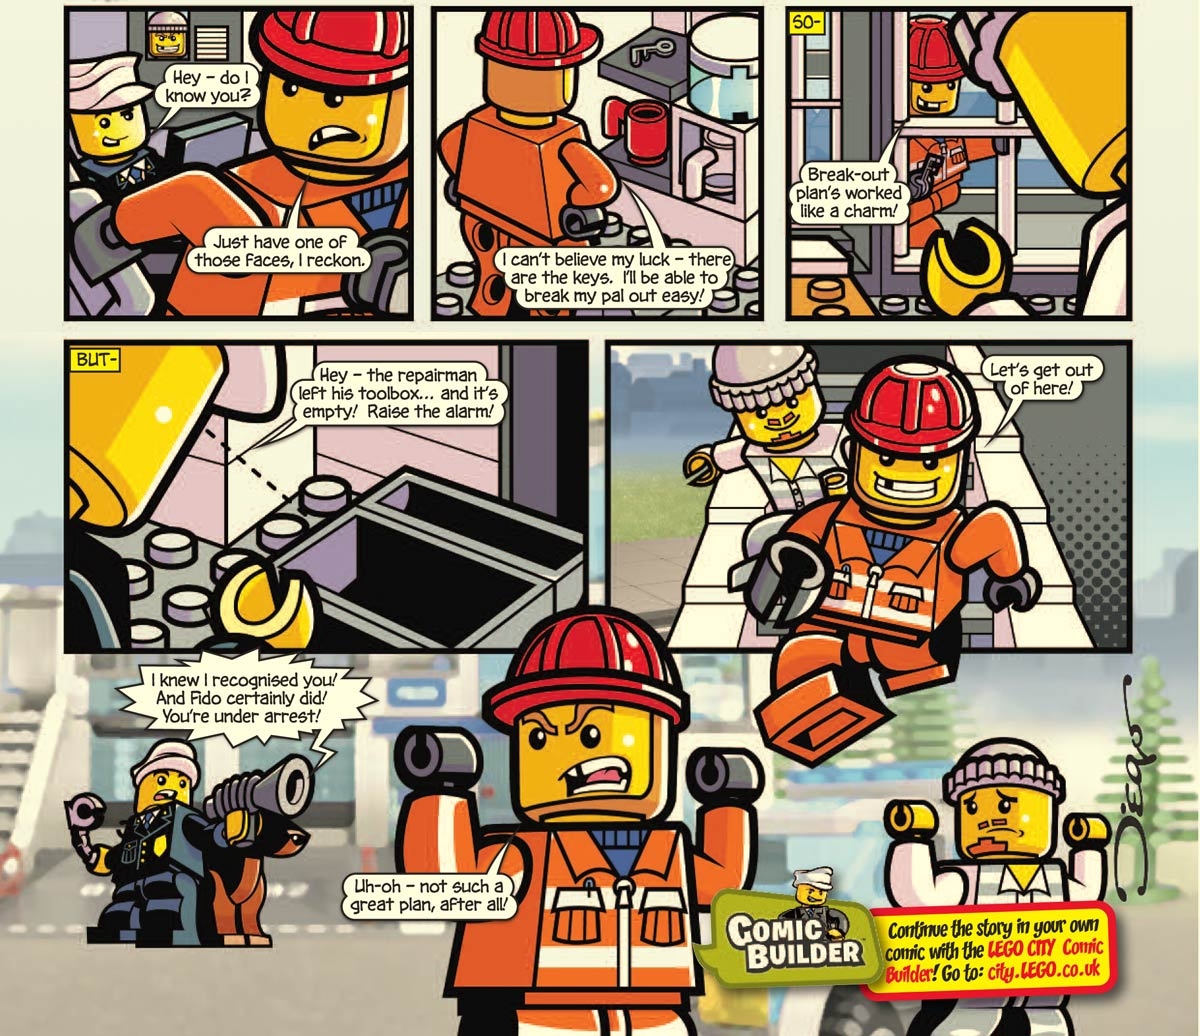 LEGO comic, by Diego Jourdan